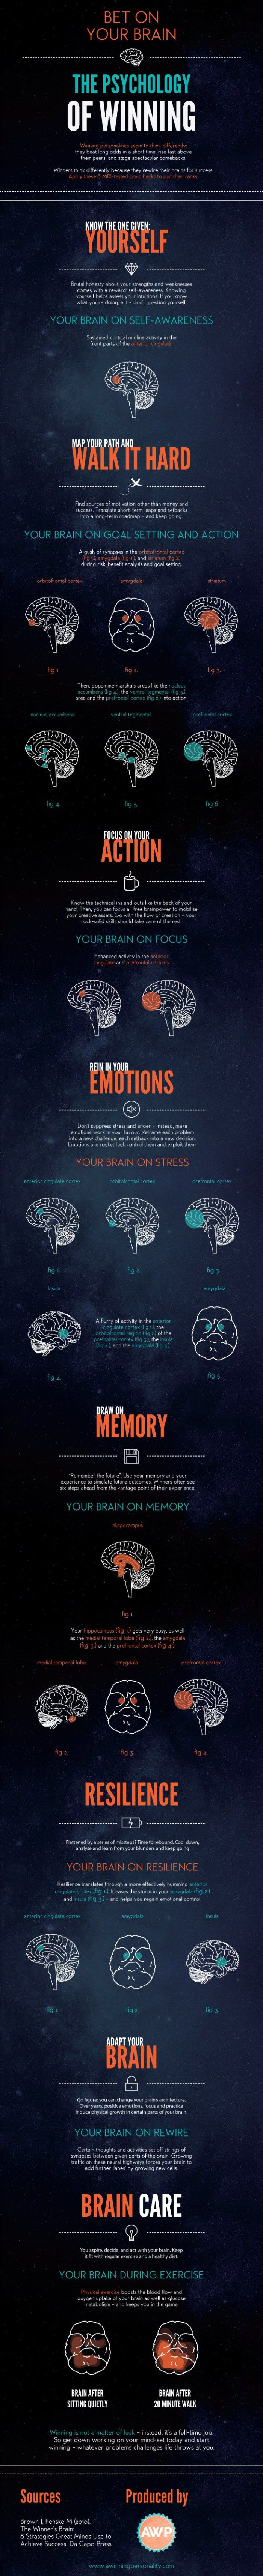 8 Secrets to Create a Failure-resistant Brain  [by A Winning Personality -- via #tipsographic]. More at tipsographic.com